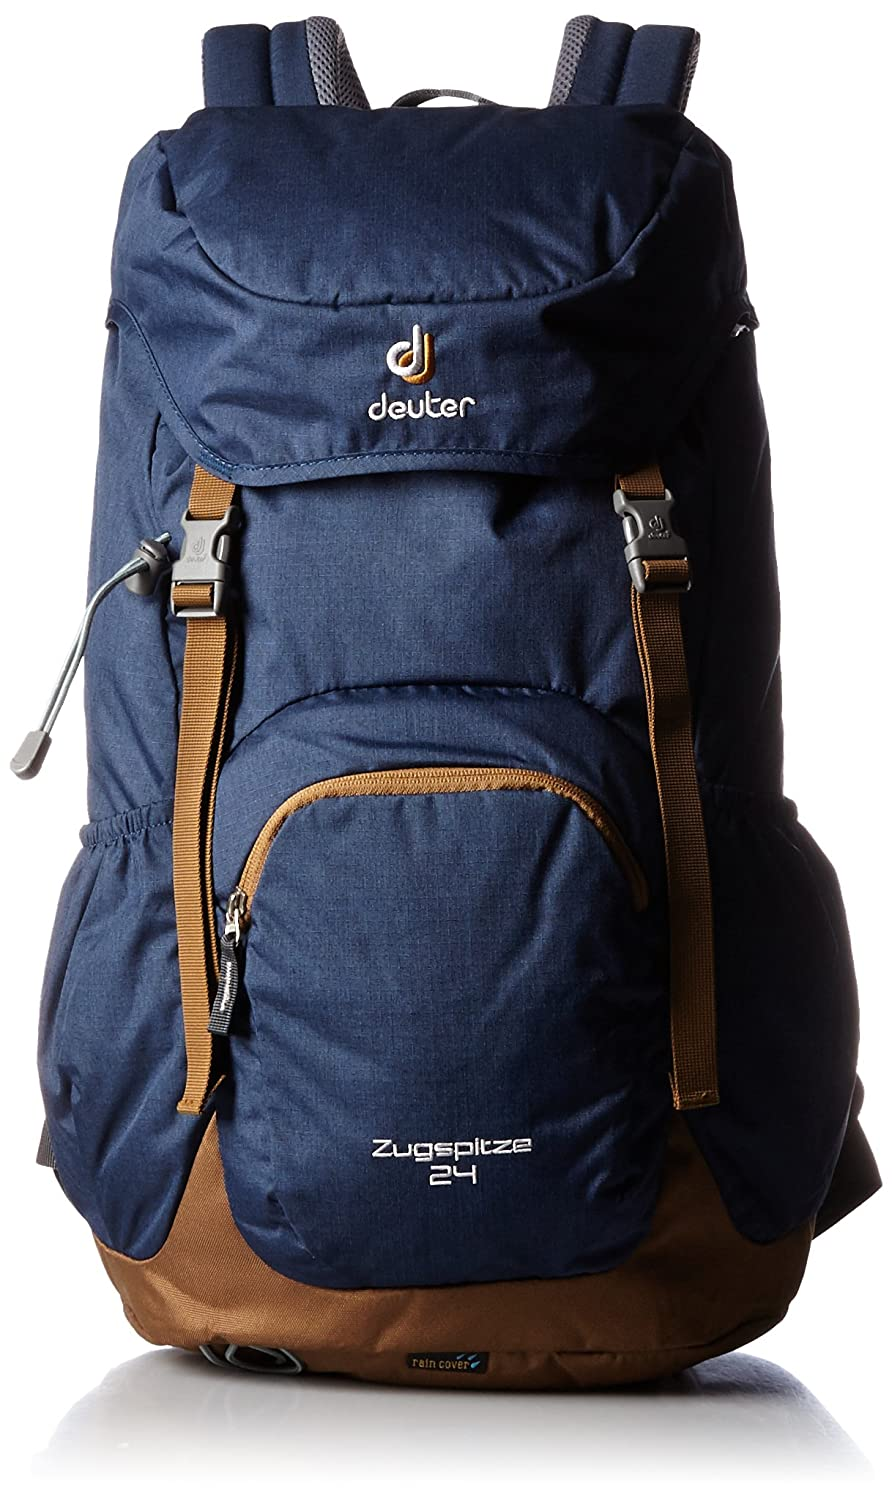 Deuter Zugspitze 24 Mochila, Unisex Adulto, Azul (Midnight-Lion), 54 Centimeters: Amazon.es: Deportes y aire libre